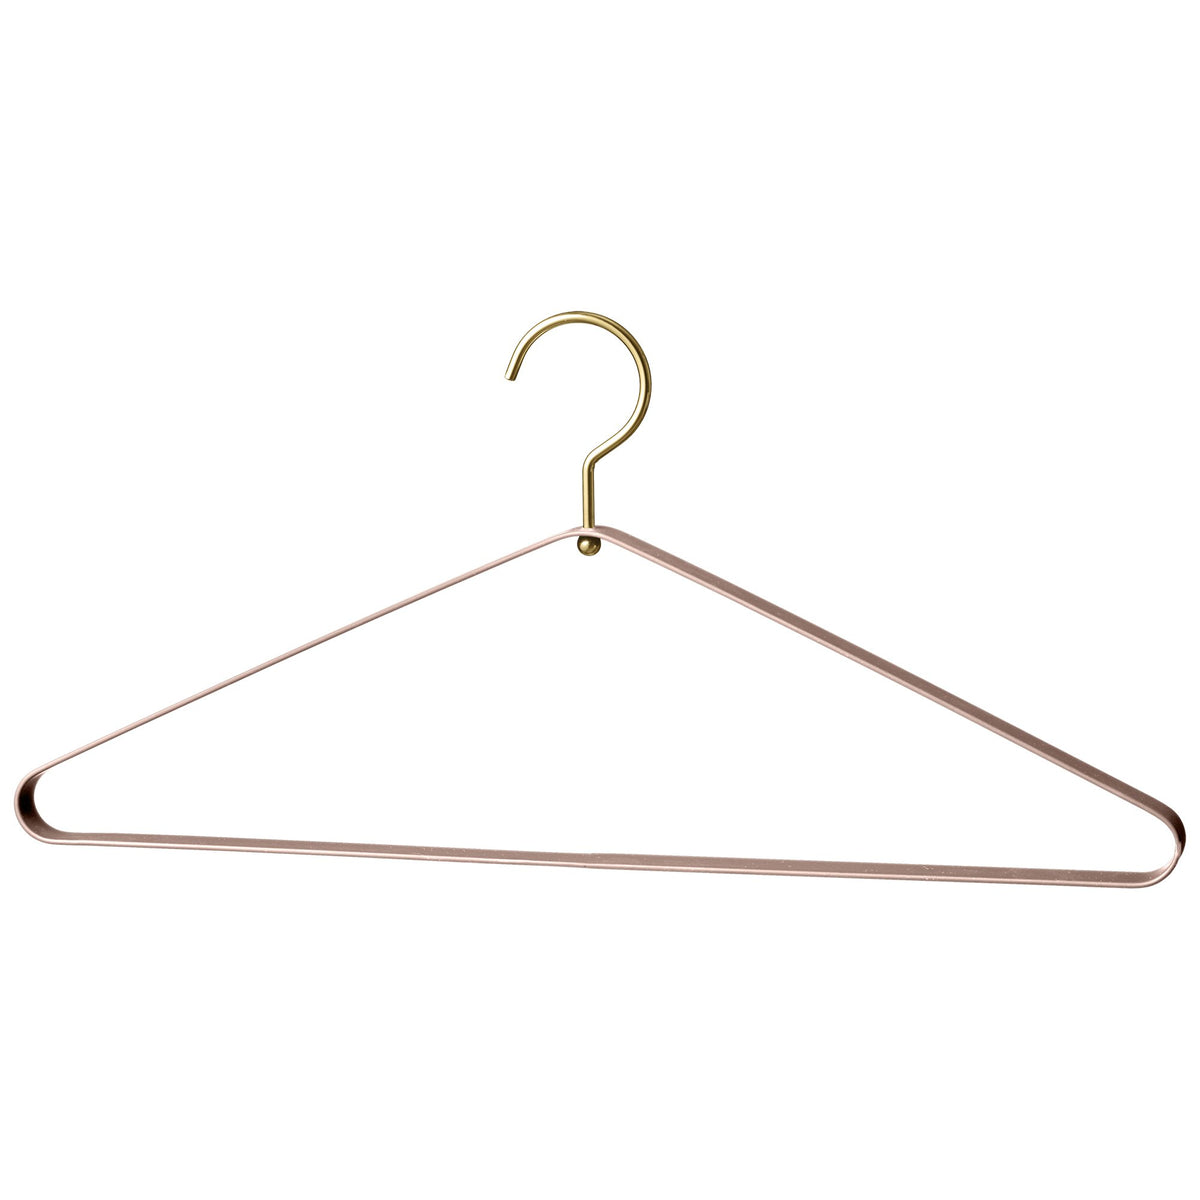 VESTIS hanger - Set of 2